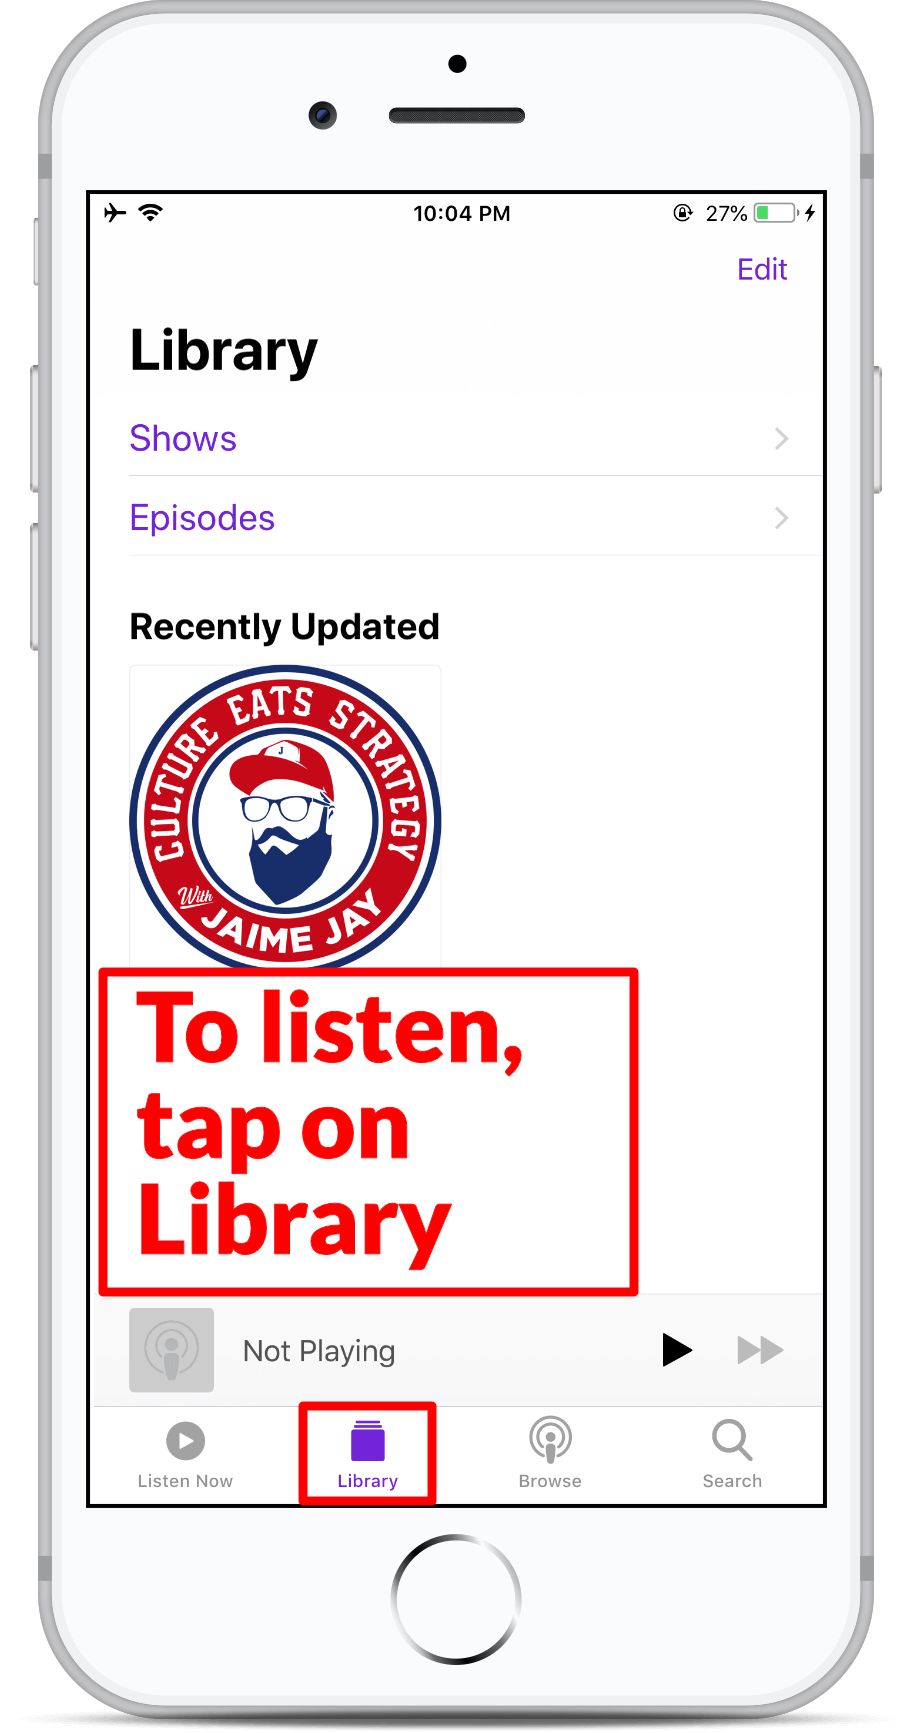 Subscribe on Apple Podcast - Step 8